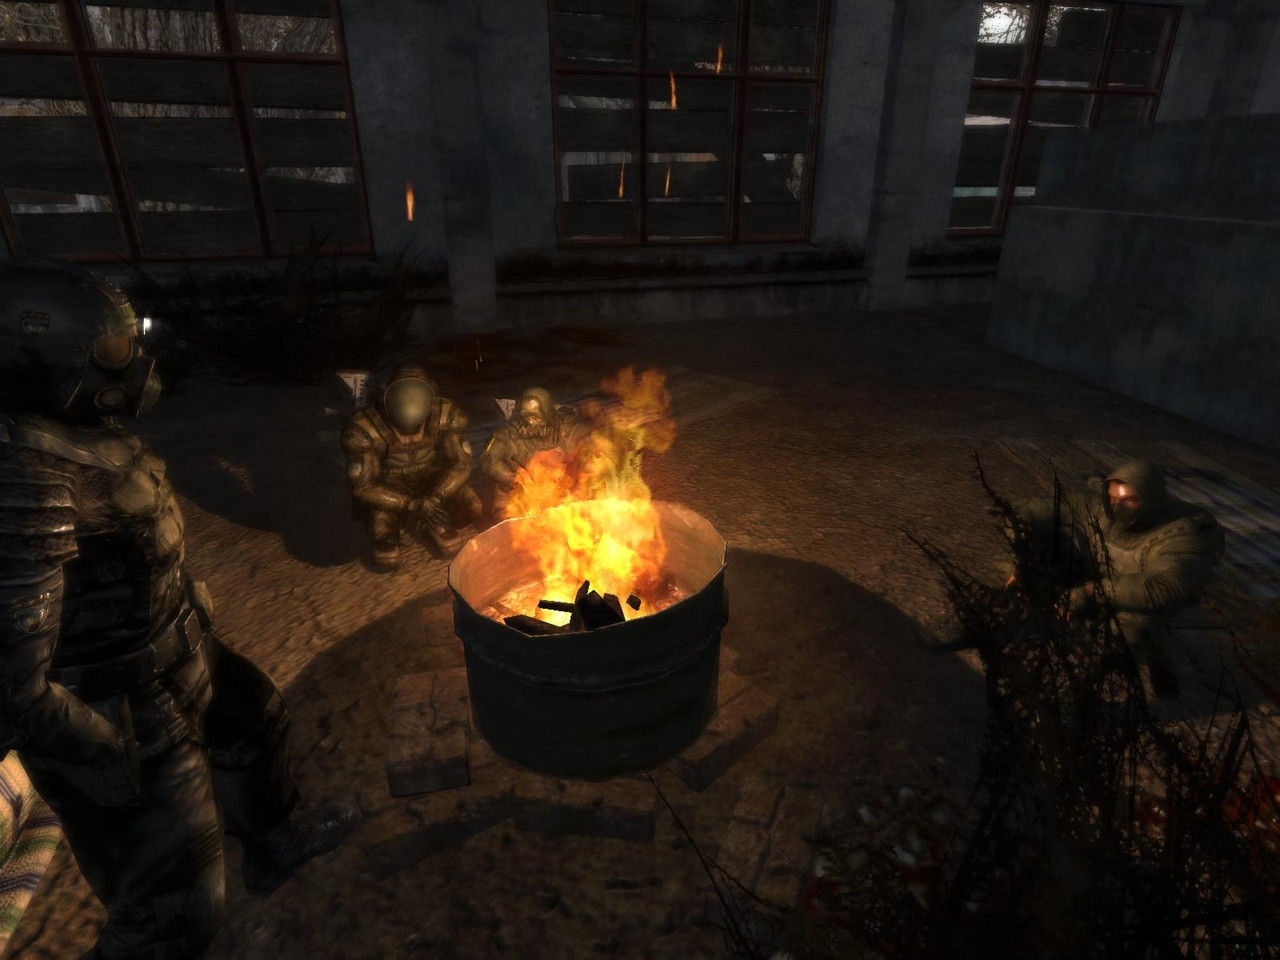 Скриншот из игры S.T.A.L.K.E.R.: Shadow of Chernobyl под номером 125